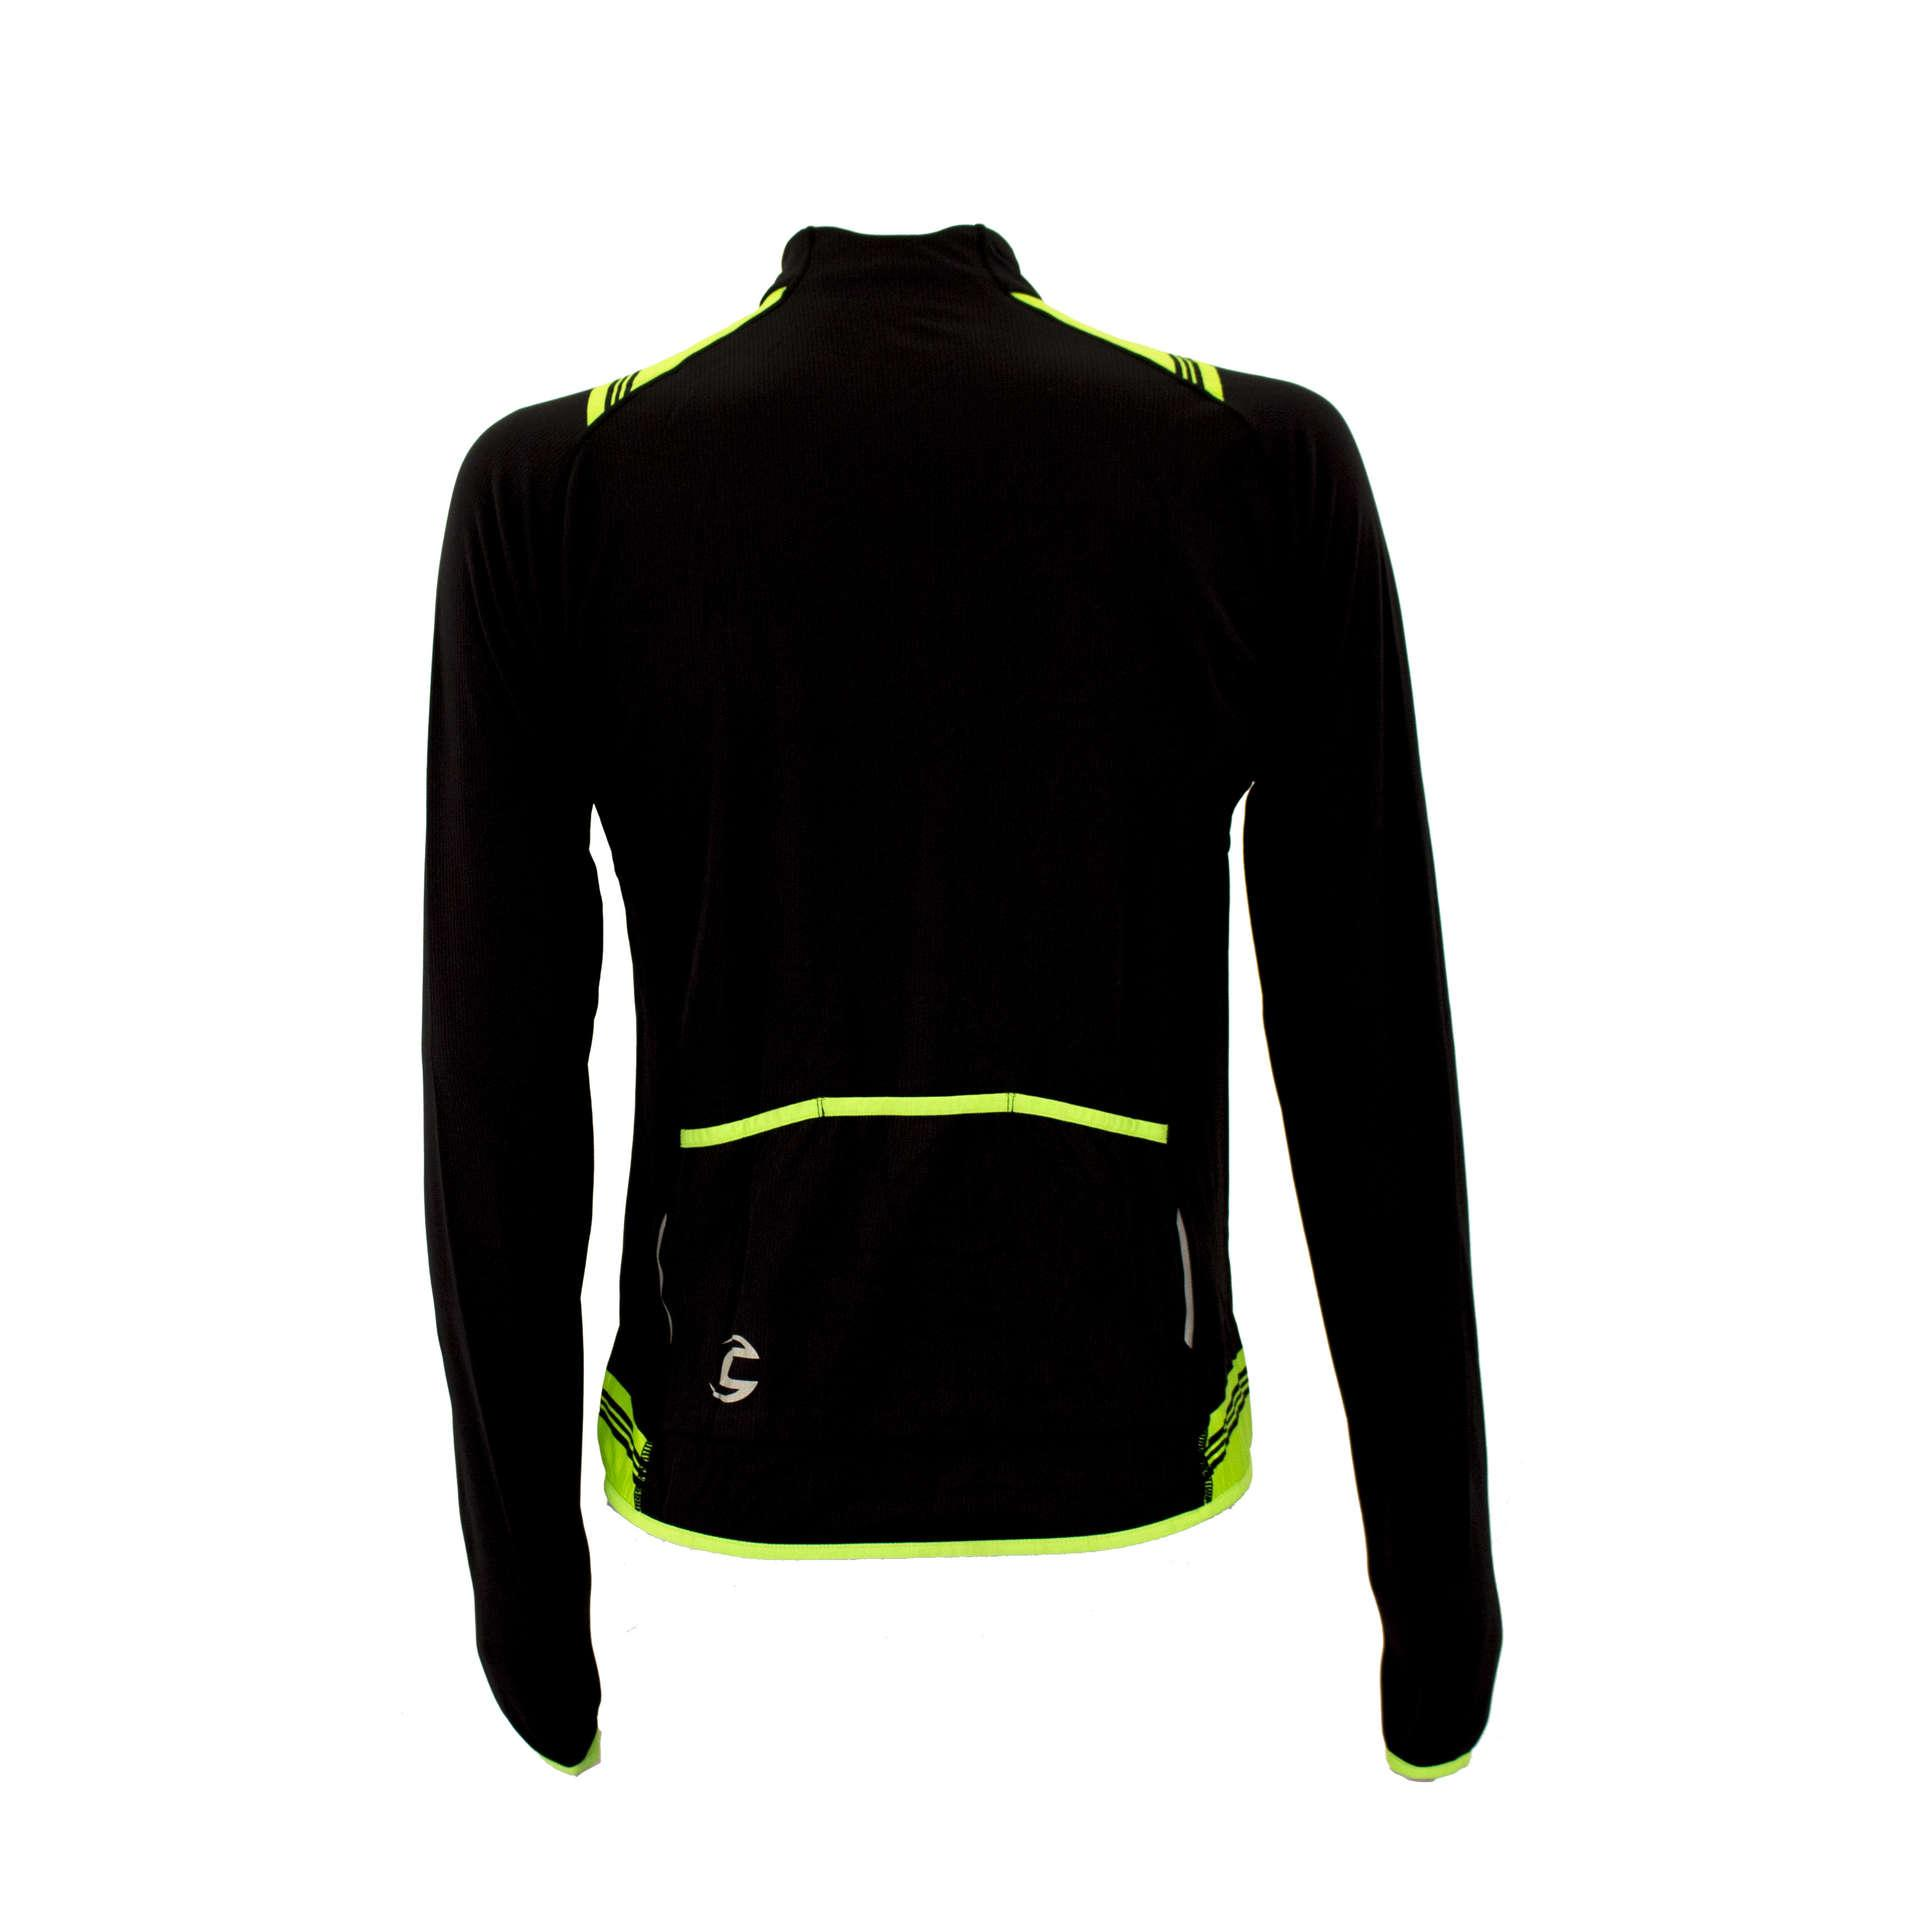 Afbeelding Cannondale midweight performance classic wielershirt lange mouw zwart groen